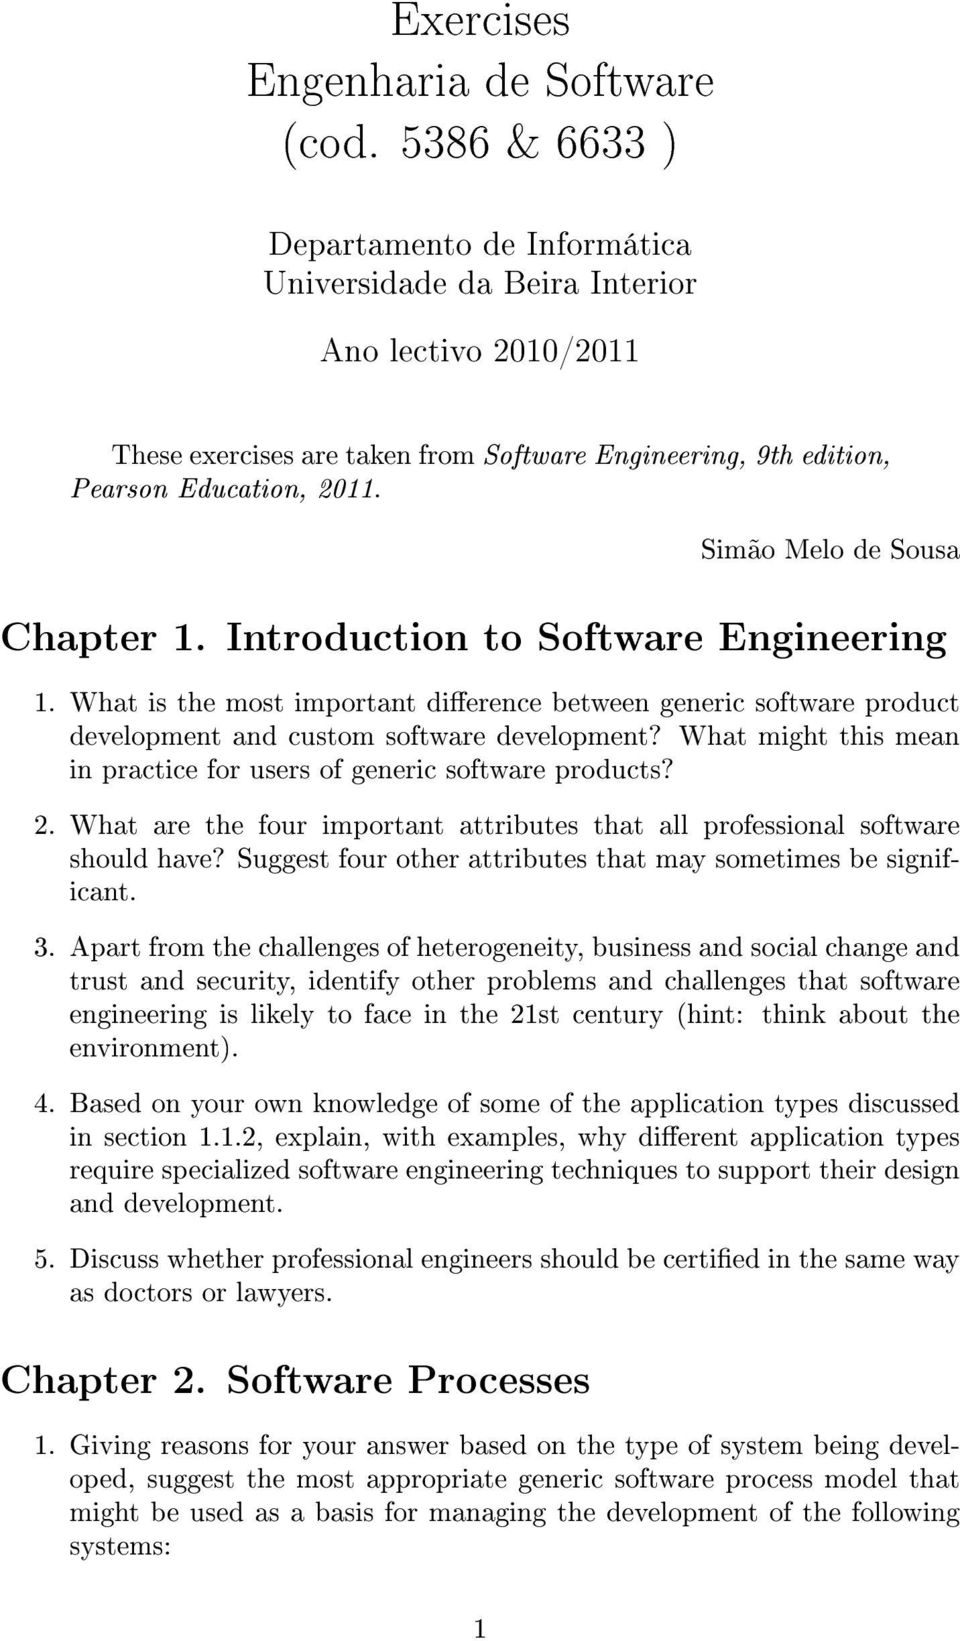 Simão Melo de Sousa Chapter 1. Introduction to Software Engineering 1. What is the most important dierence between generic software product development and custom software development?